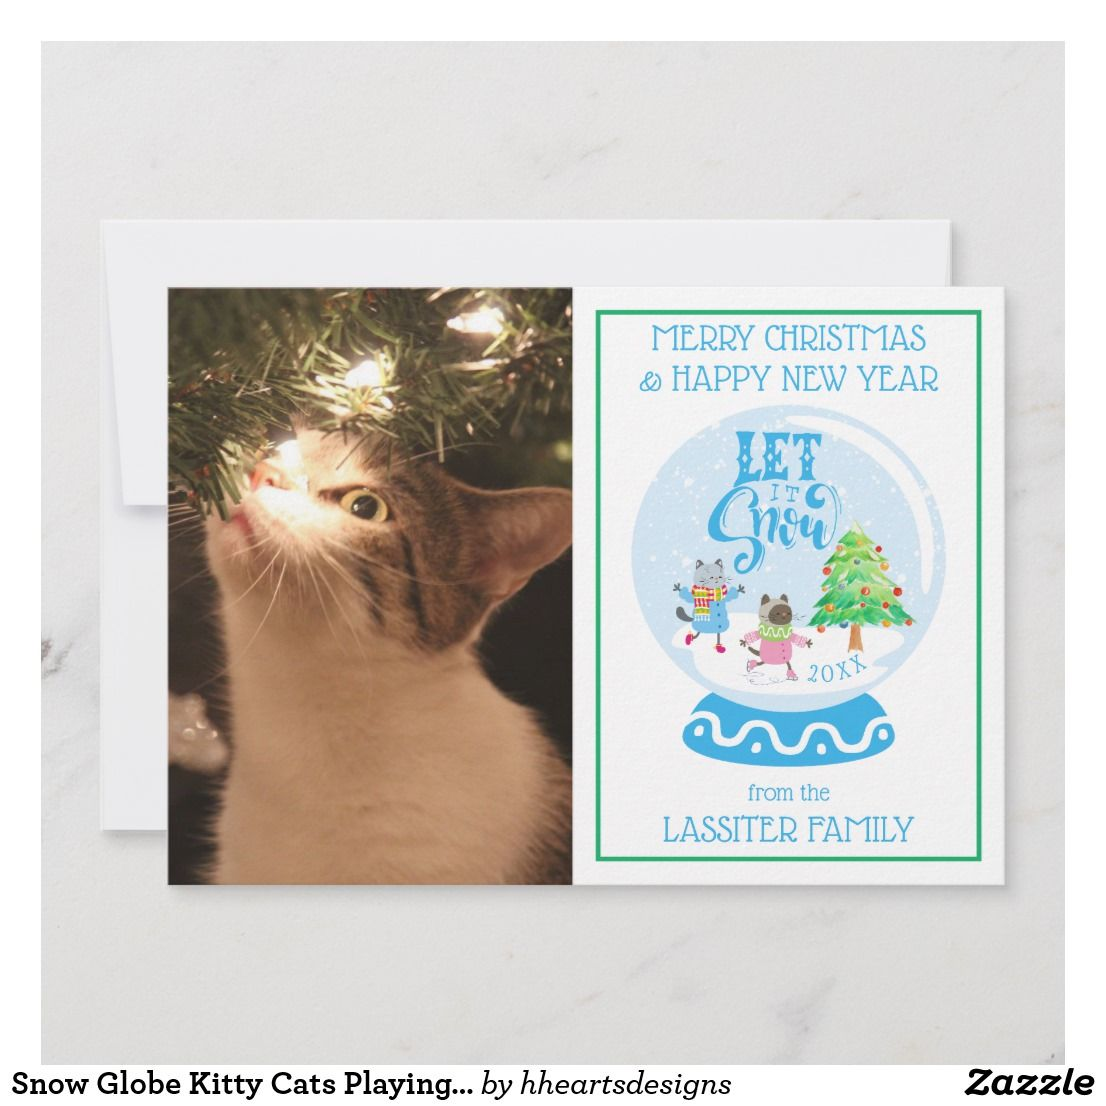 Snow Globe Kitty Cats Playing Holiday Let It Snow Zazzle Com Holiday Design Card Christmas Photo Cards Dog Holiday Cards